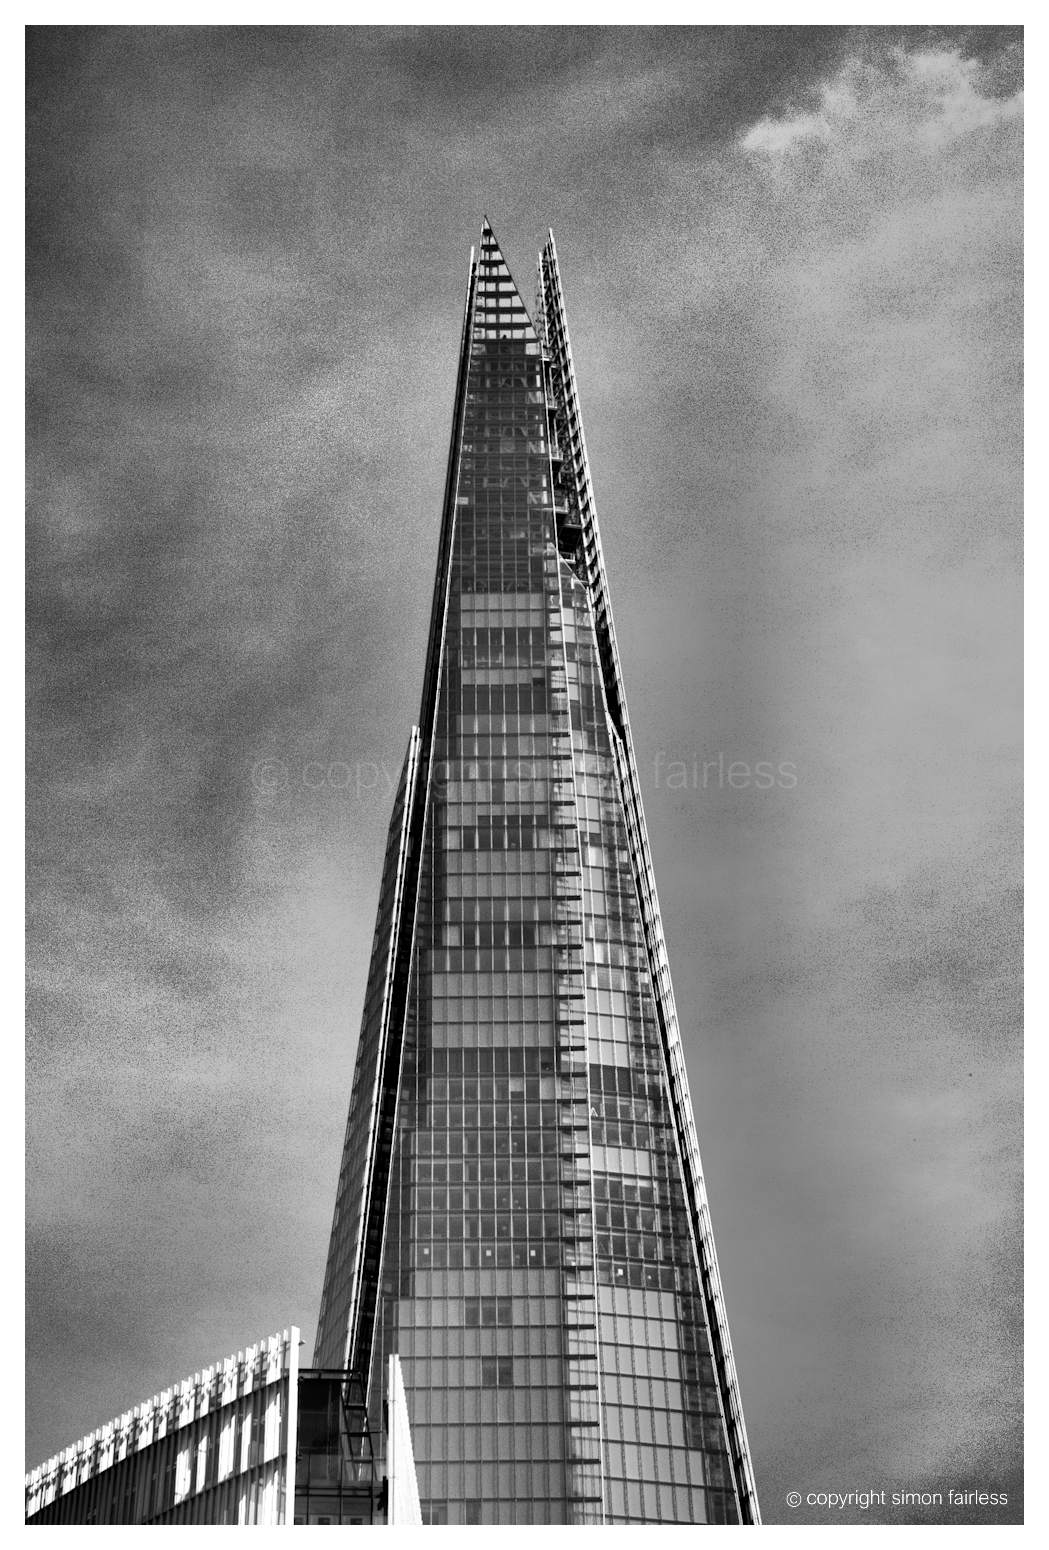 The Shard London images